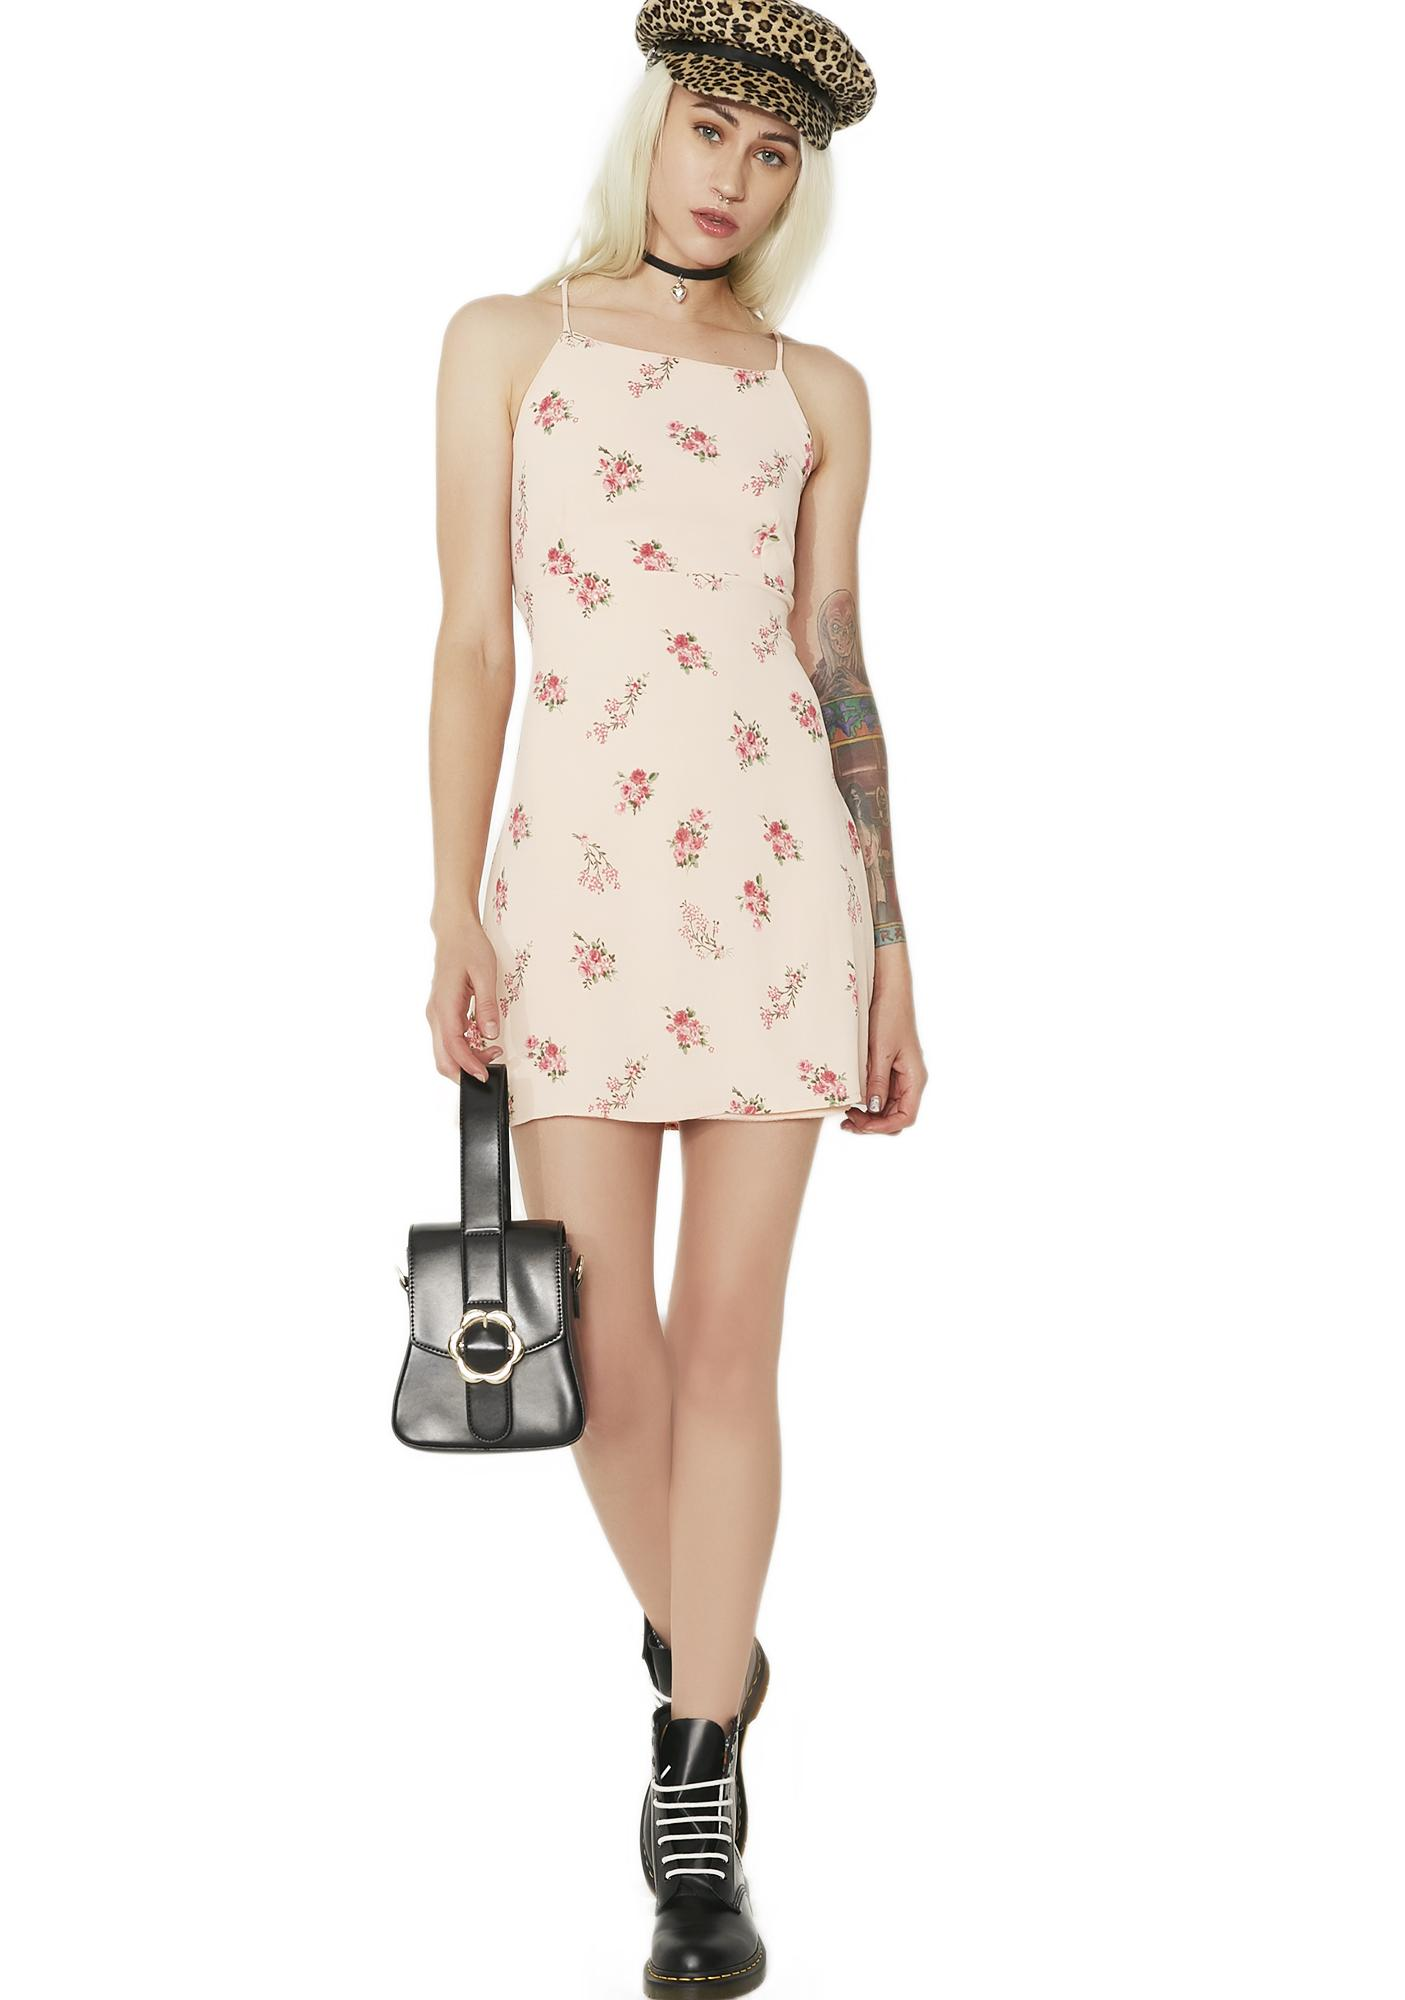 Flower Fairy Tank Dress